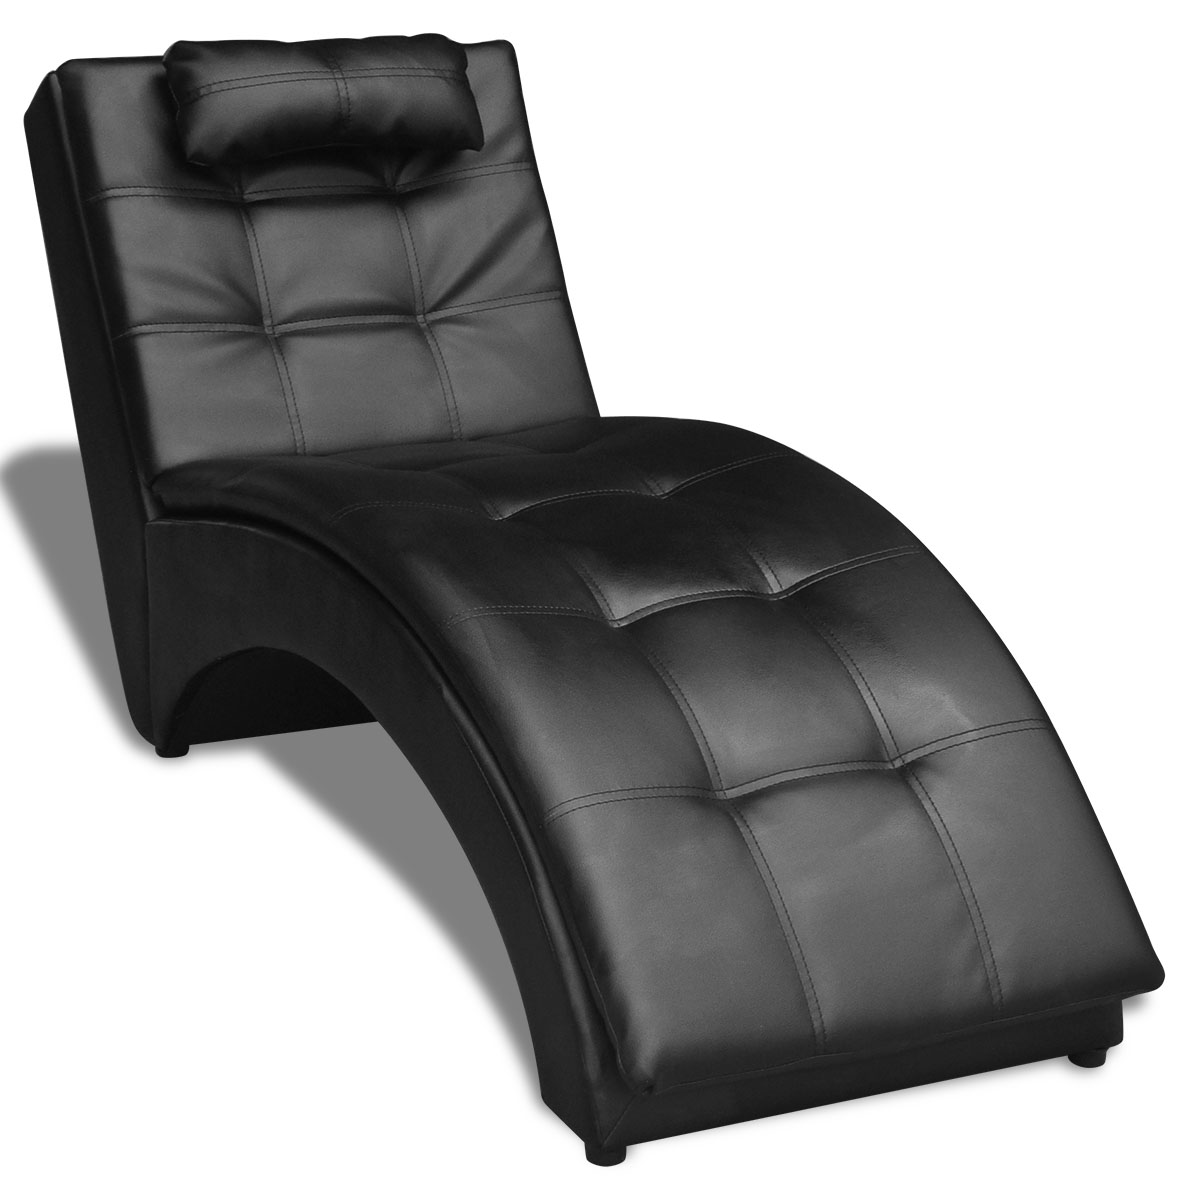 indoor chaise lounge chairs with arms. cloud mountain leisure chaise lounge couch sofa chair living room furniture medium size, black indoor chairs with arms